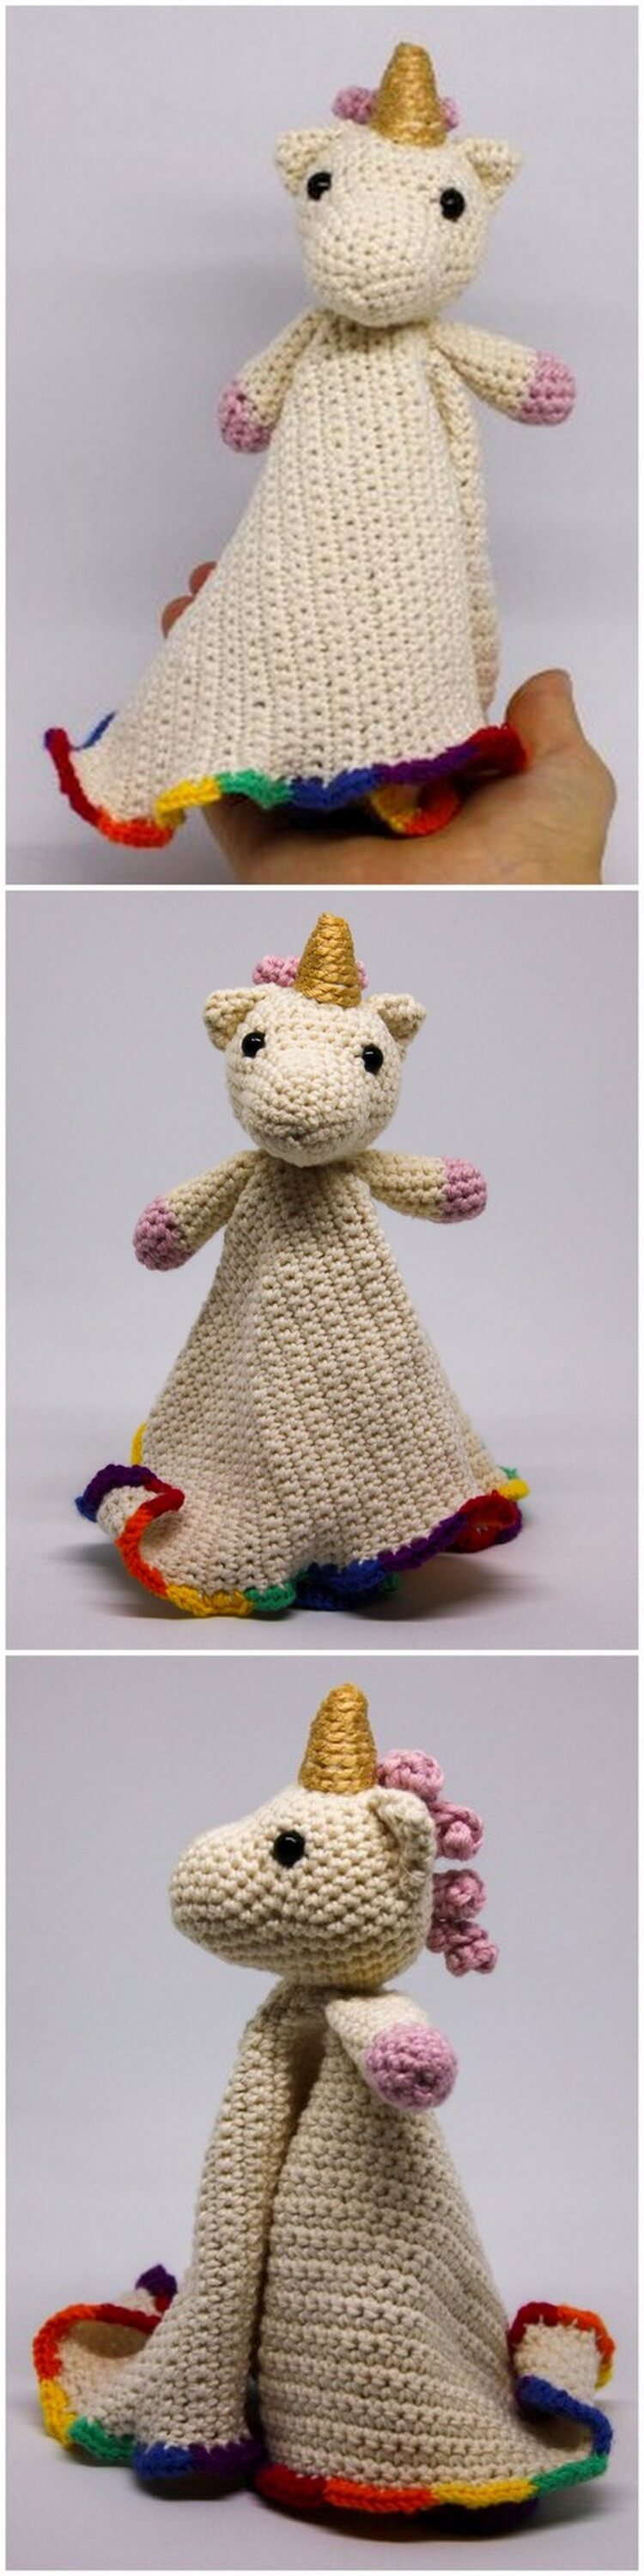 Crochet Unicorn Pattern (21)